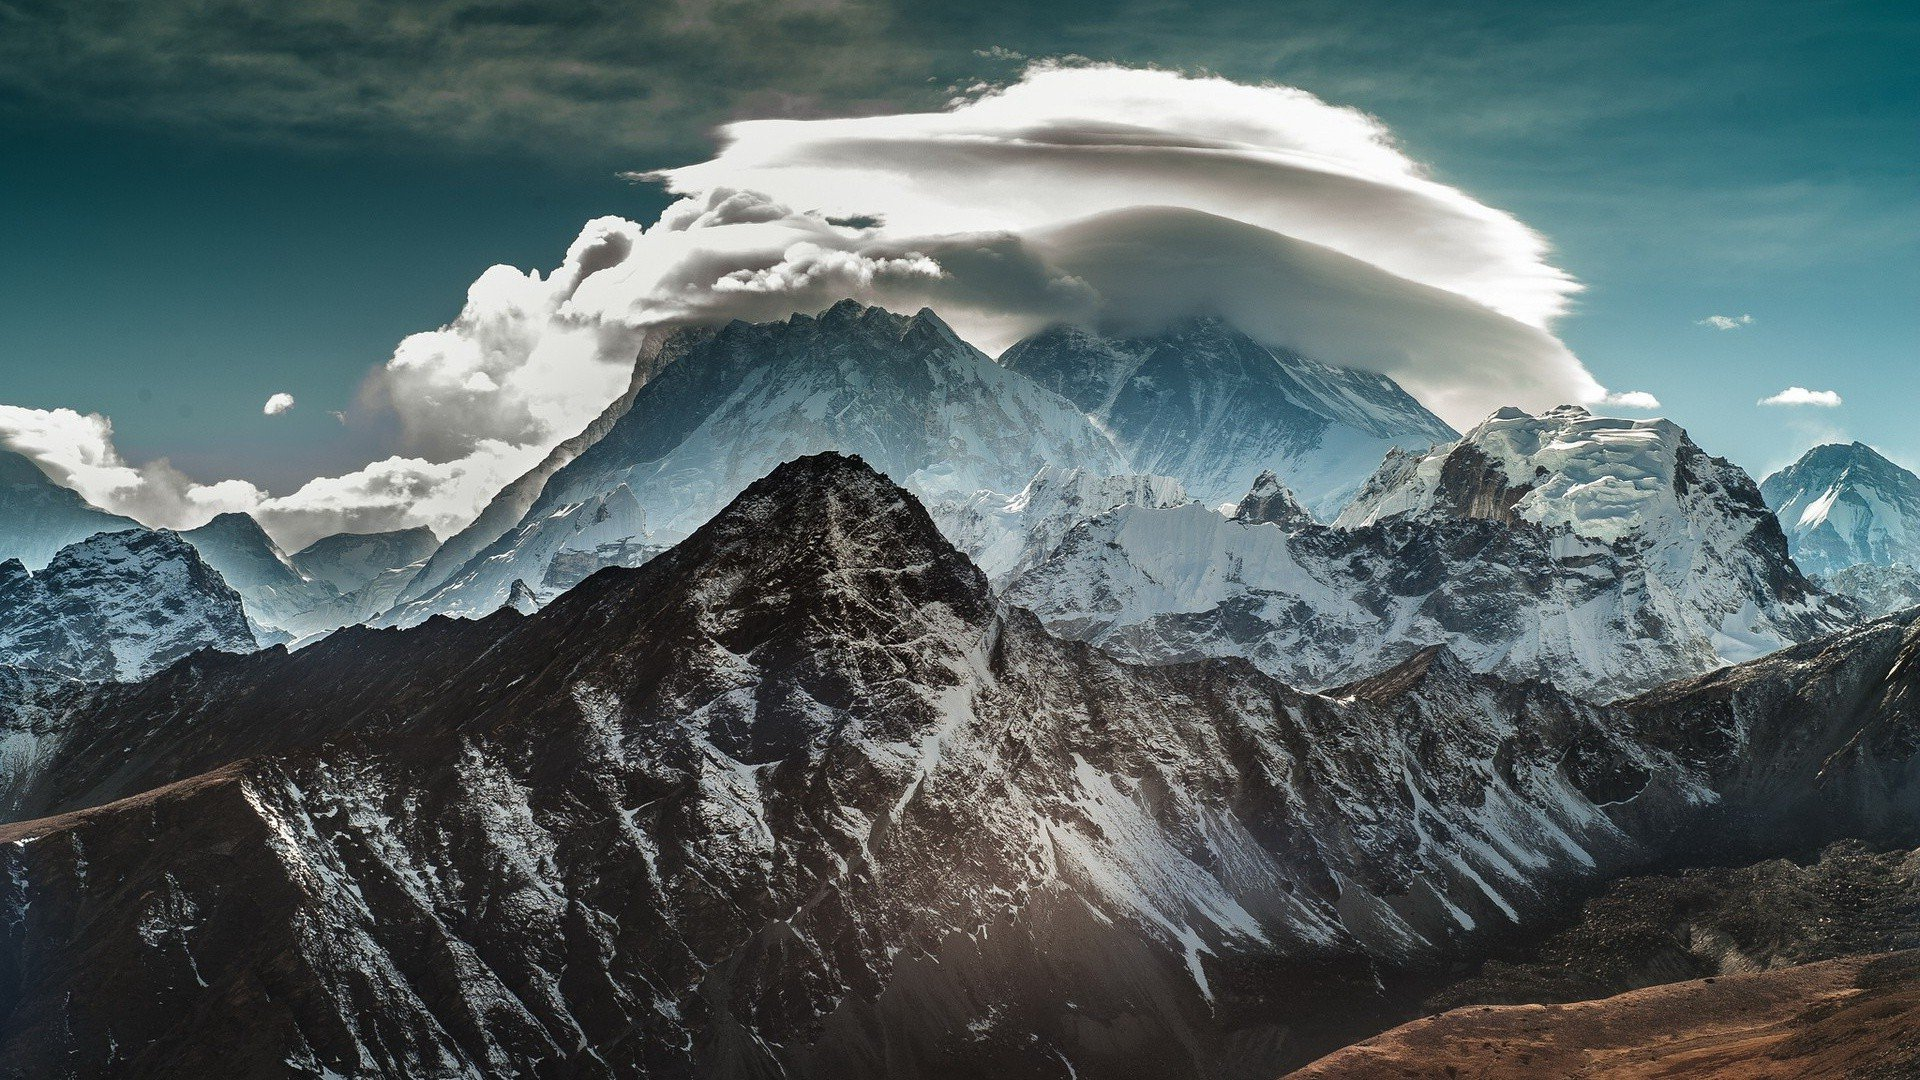 nature Mountain Clouds Wallpapers HD Desktop and Mobile 1920x1080